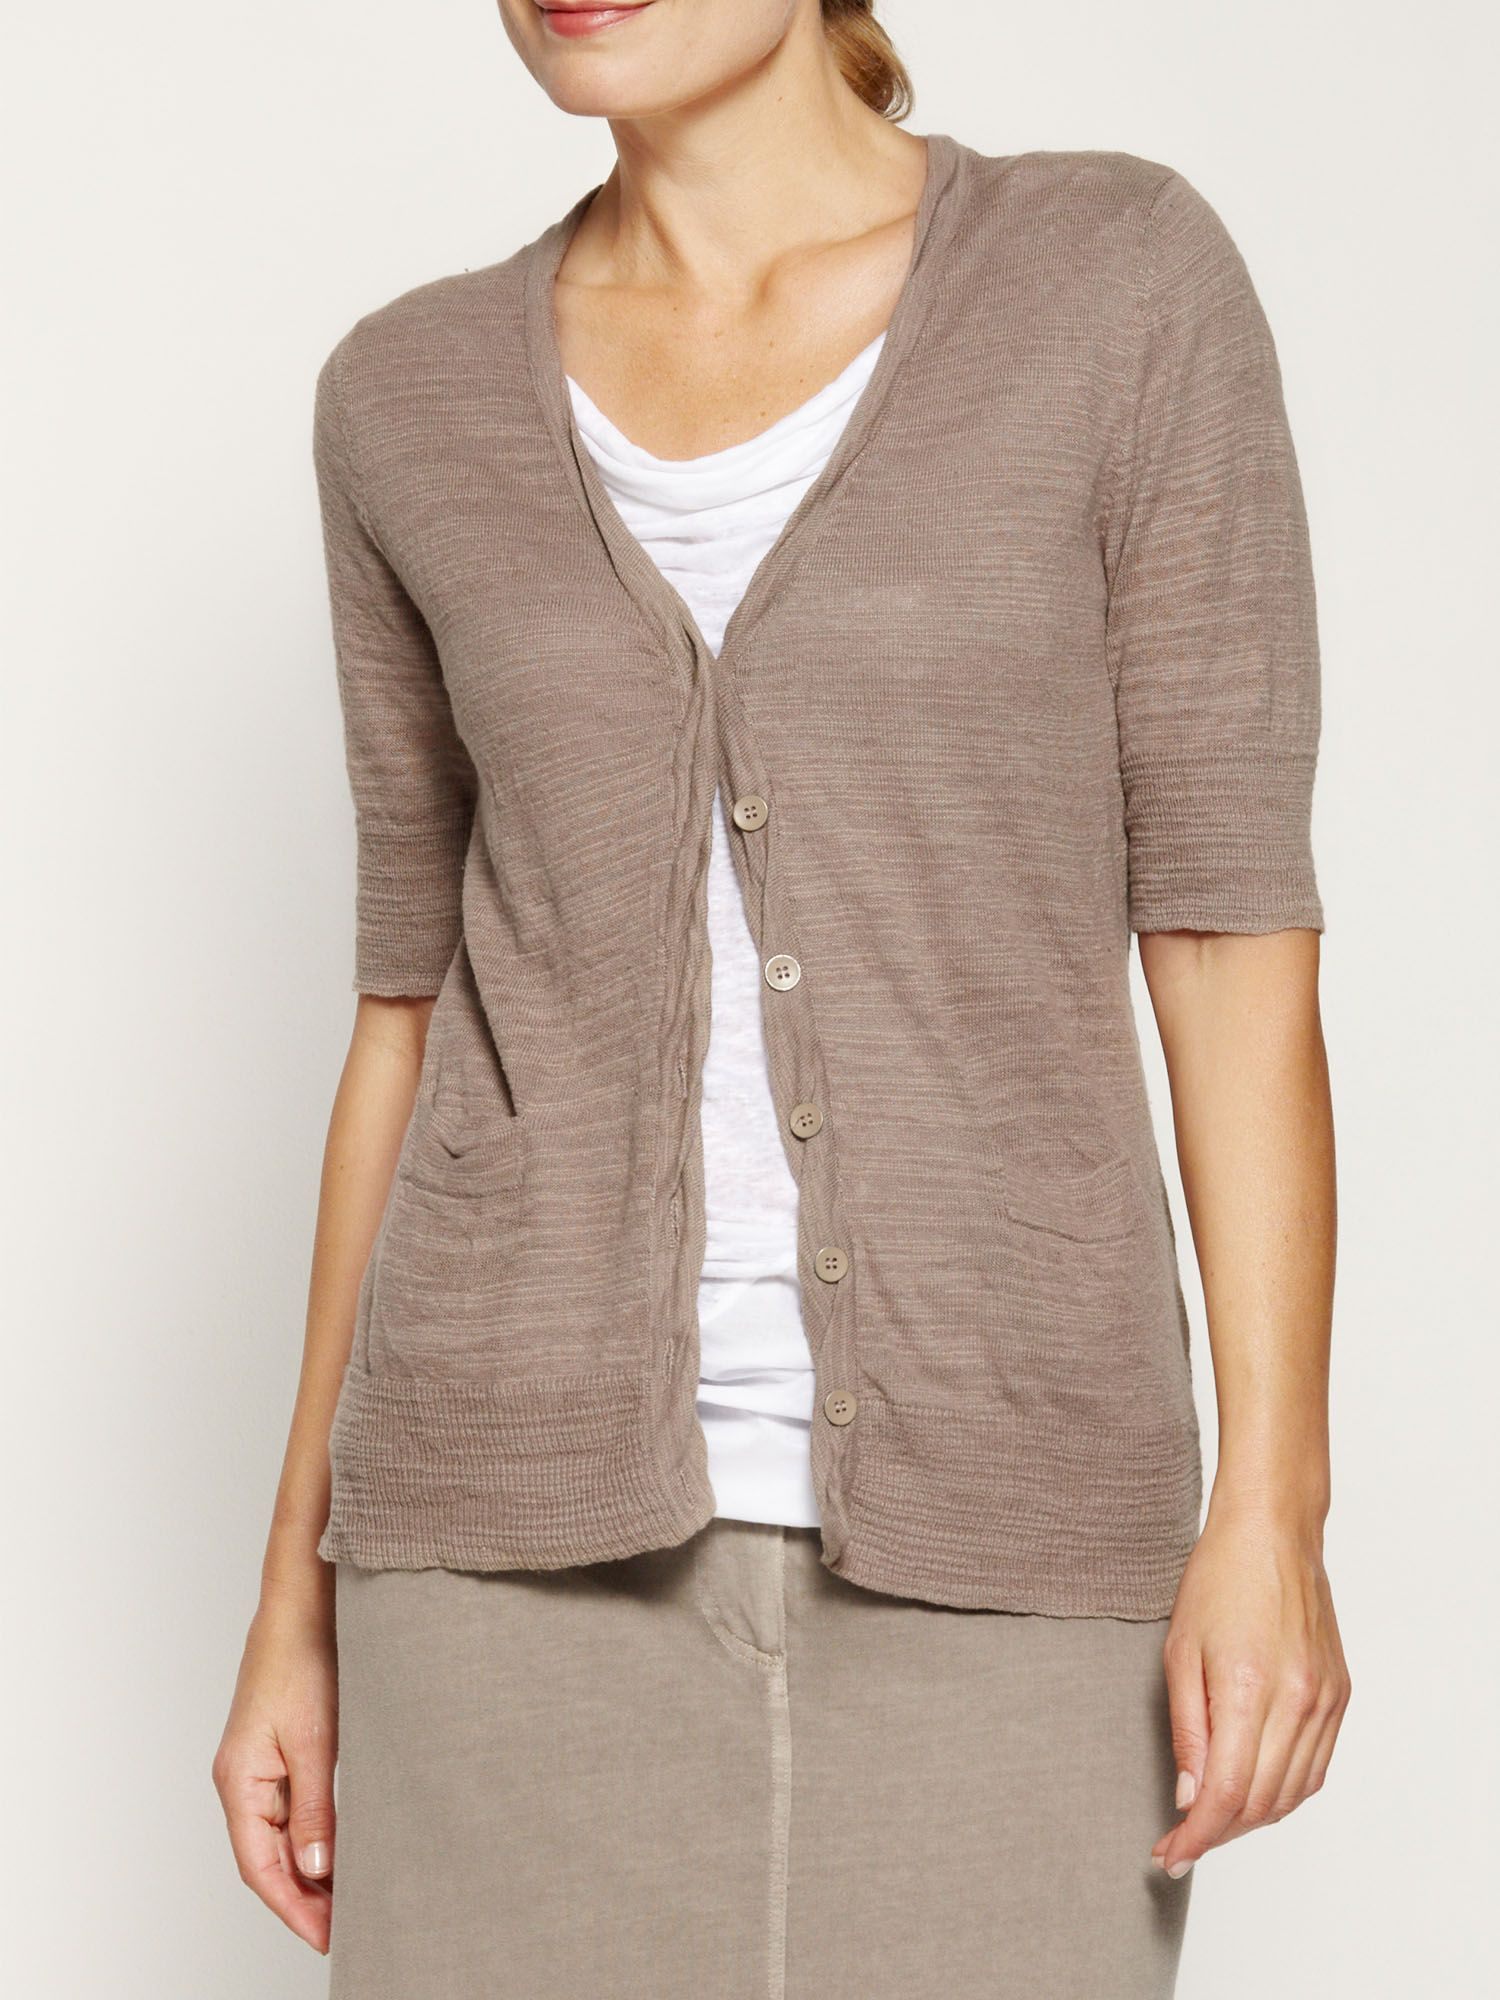 Crinkled cotton cardigan